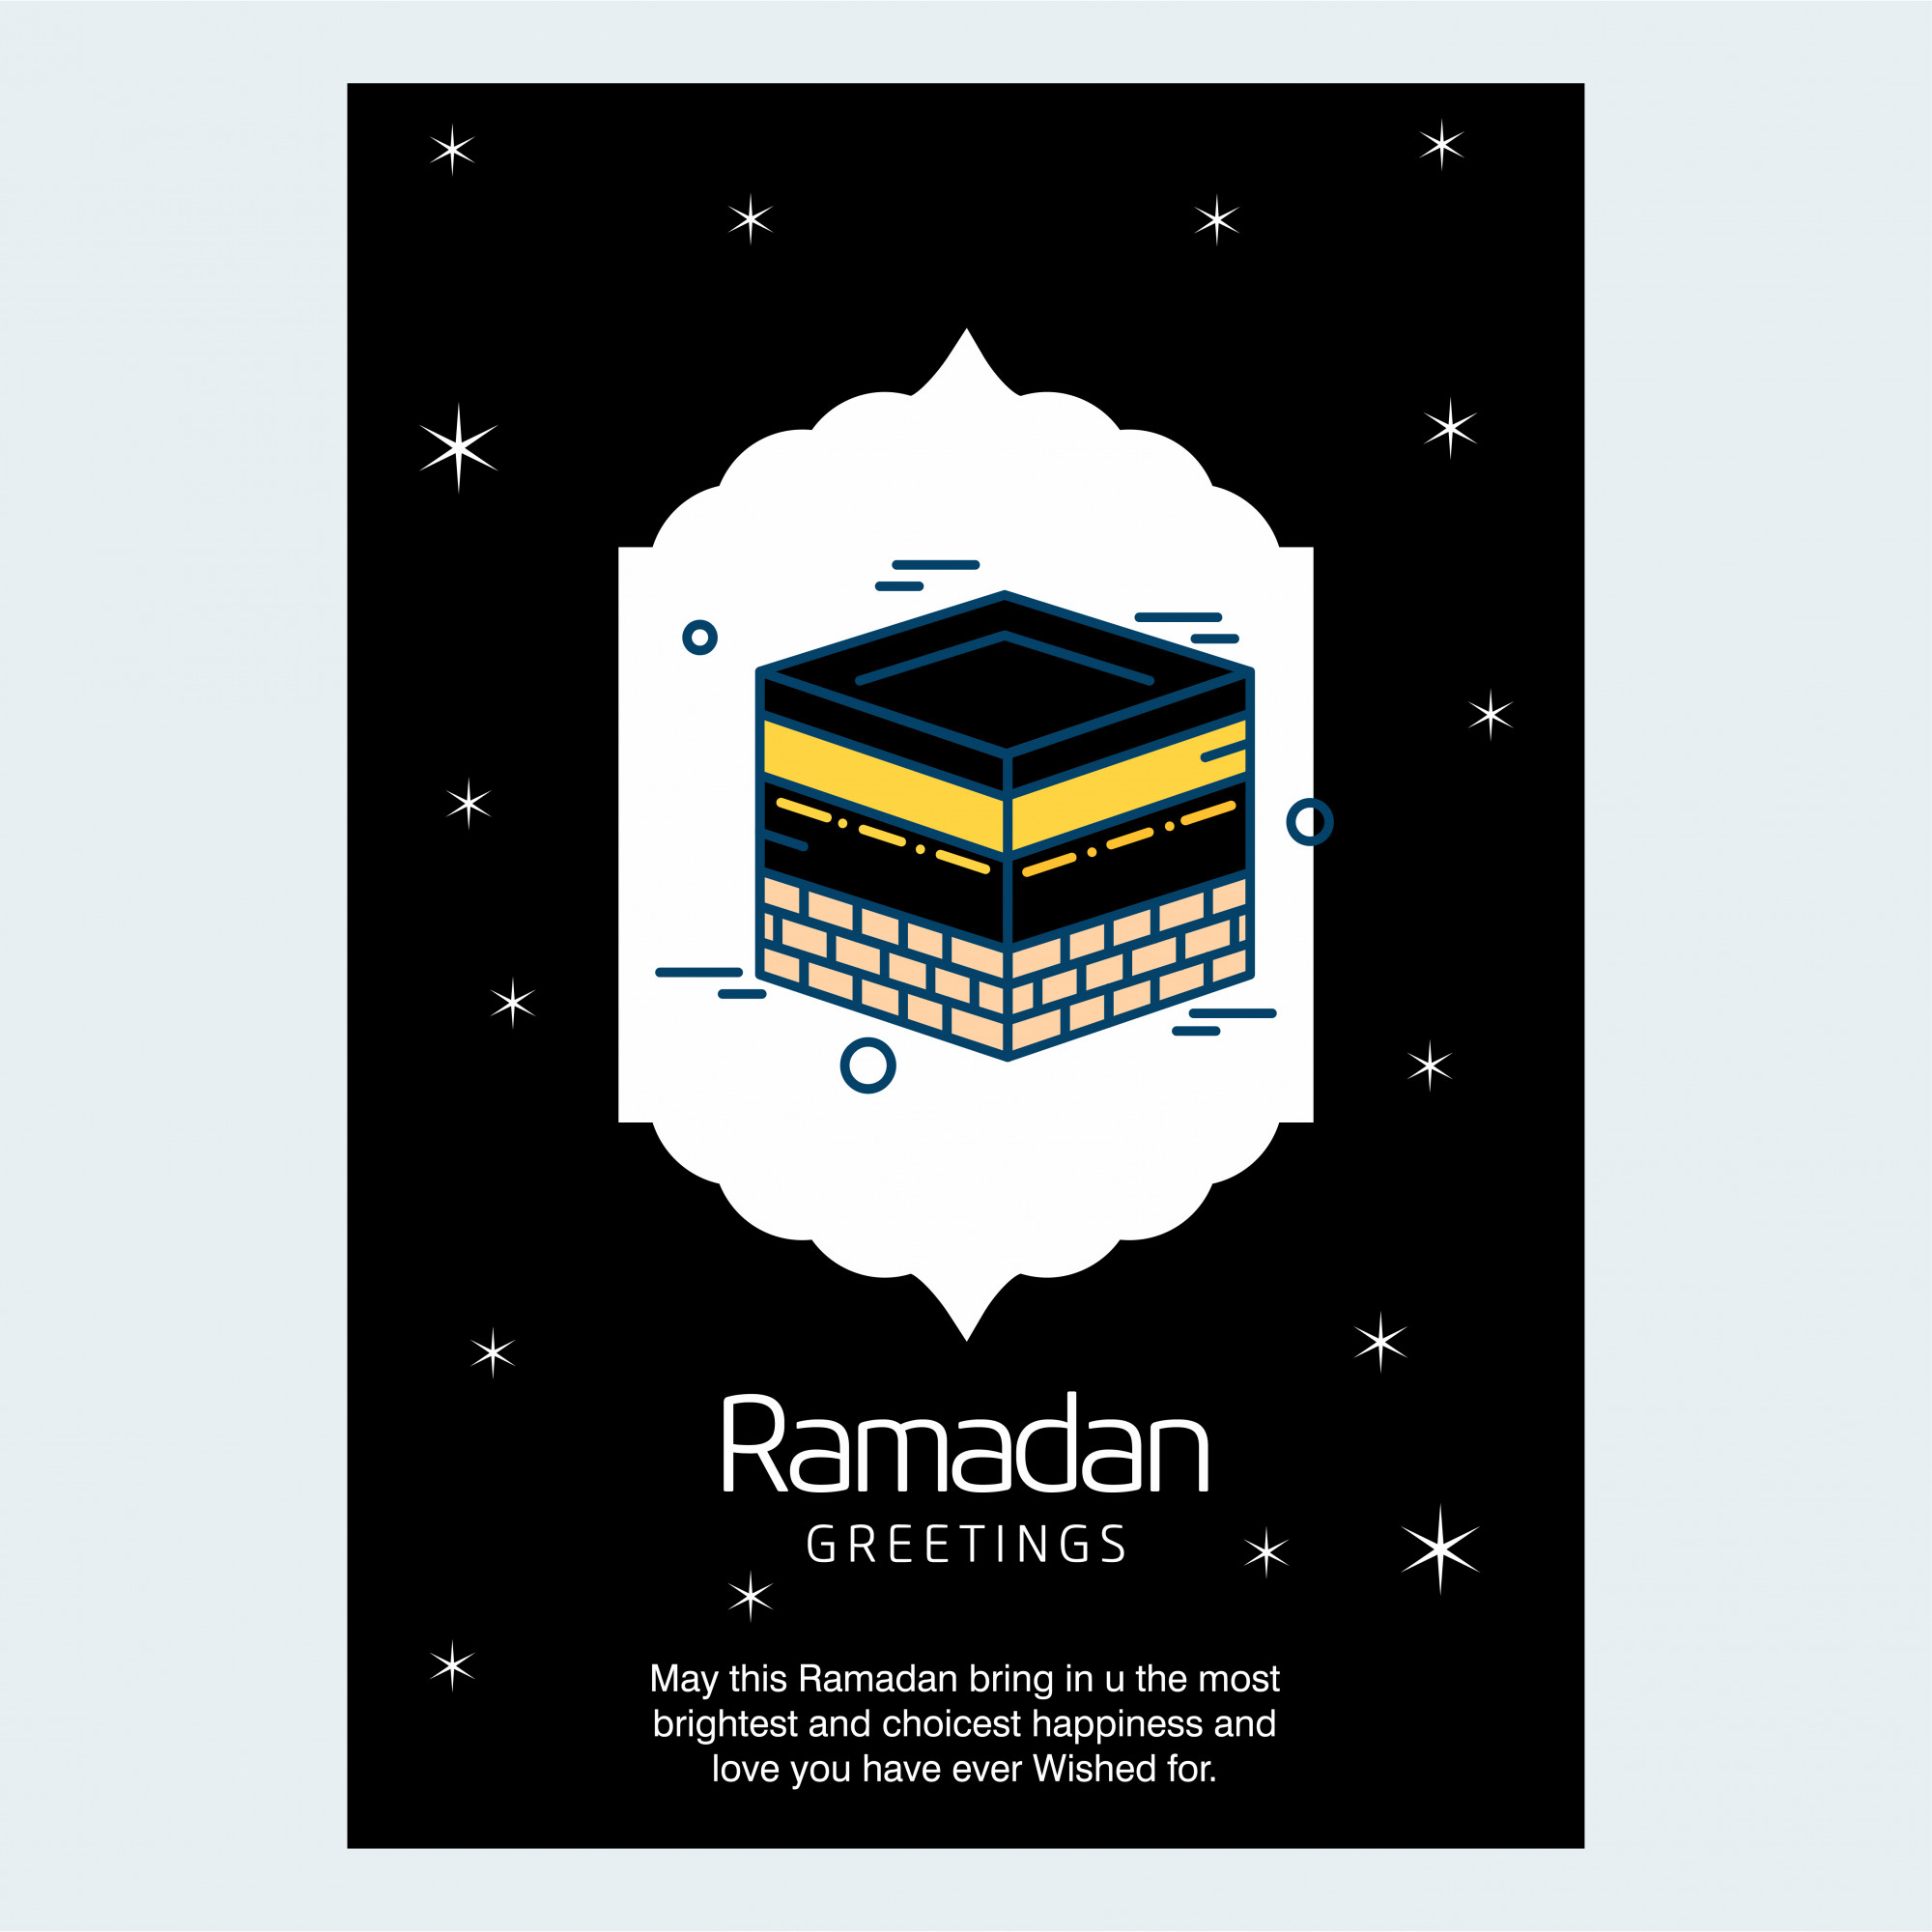 Ramadan Kareem typogrpahic and creative design vector